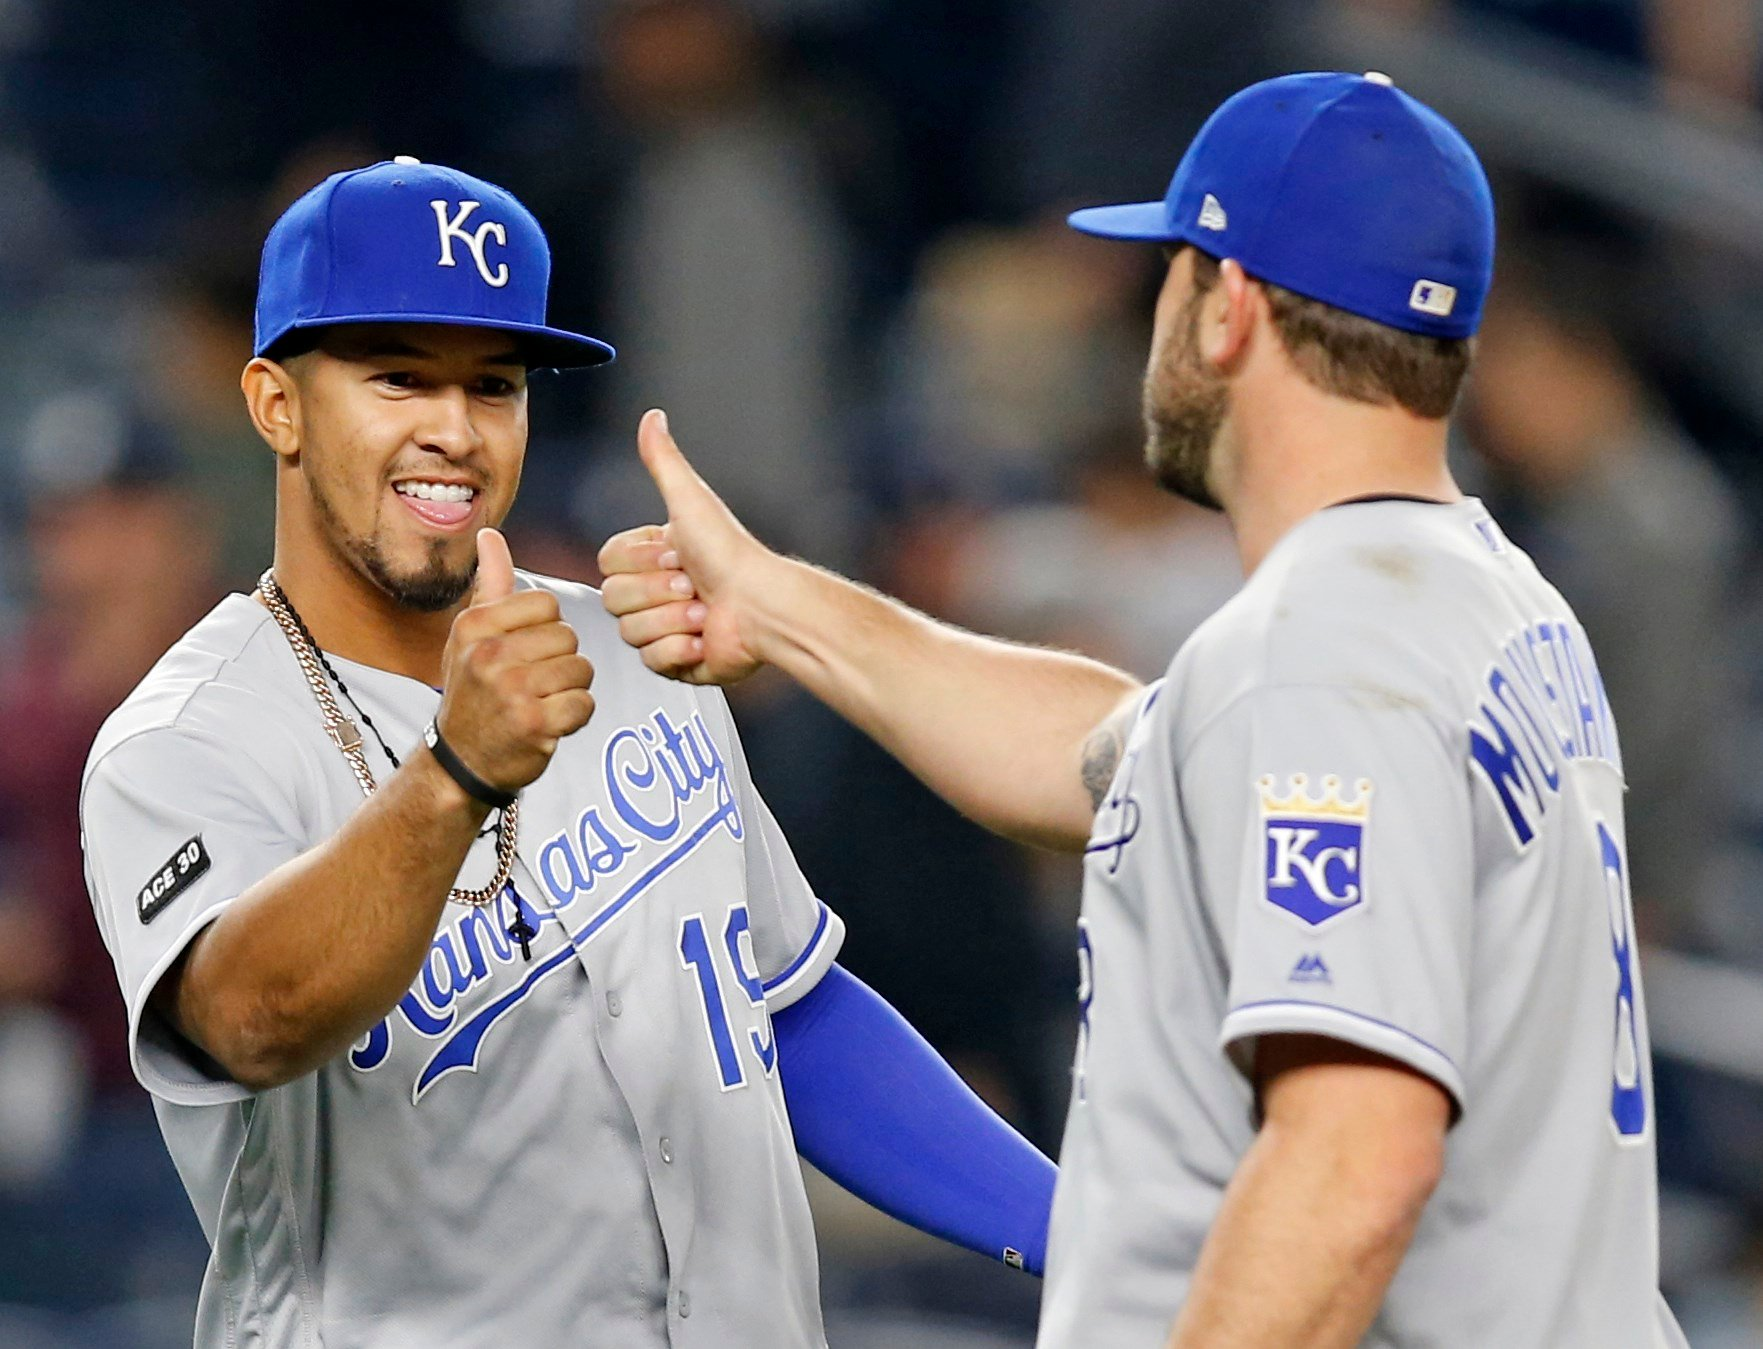 Lorenzo Cain, Whit Merrifield and Mike Moustakas also homered late for the Royals, who went deep four times in a span of nine batters. (AP)